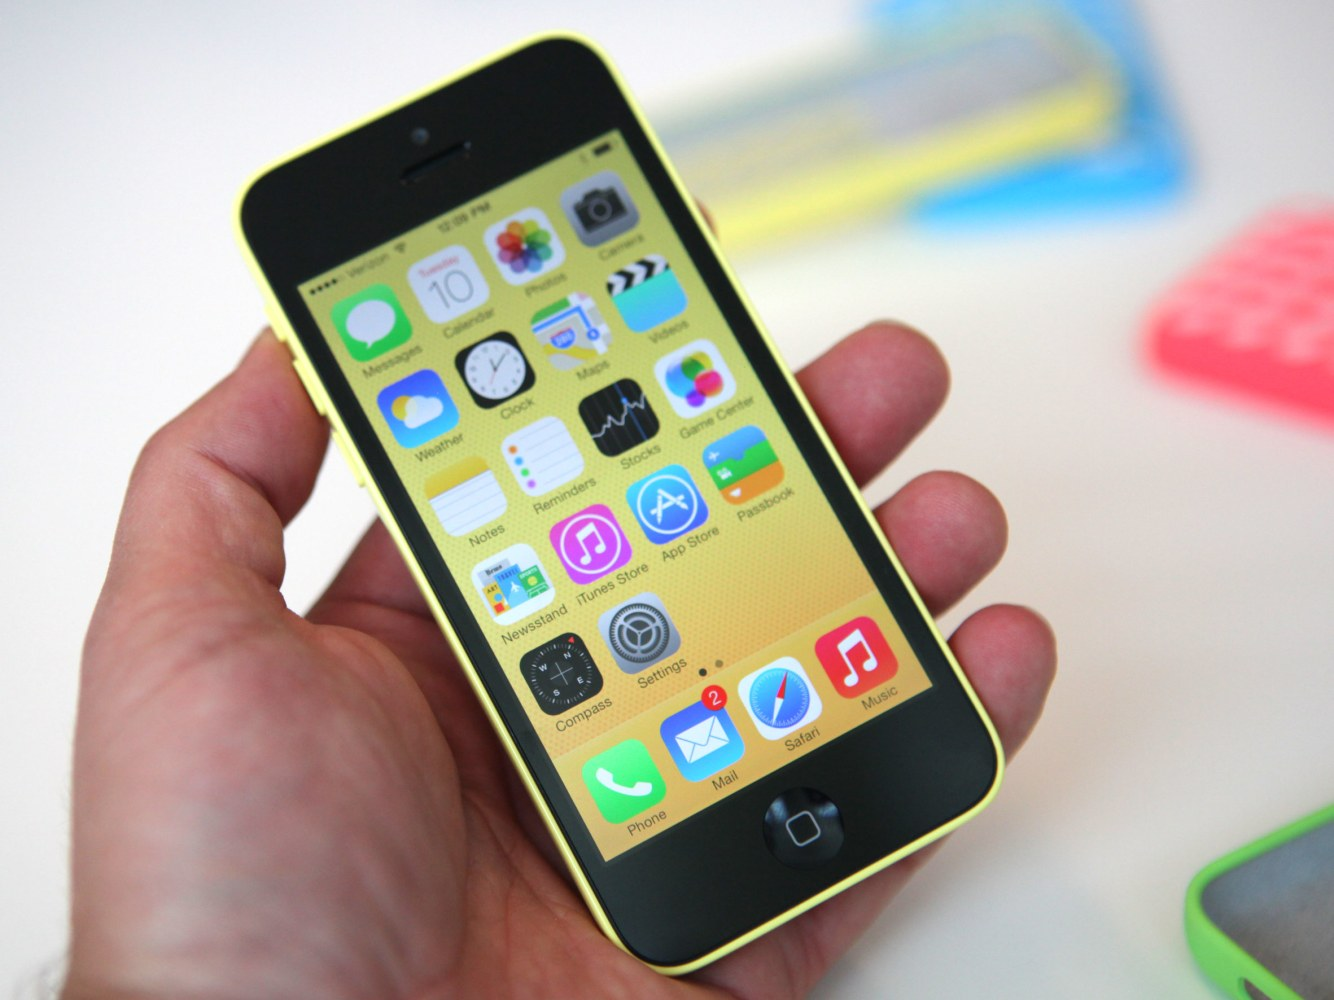 iphone 5c prices cheaper iphone 5c costs 600 to 800 worldwide nbc news 6180